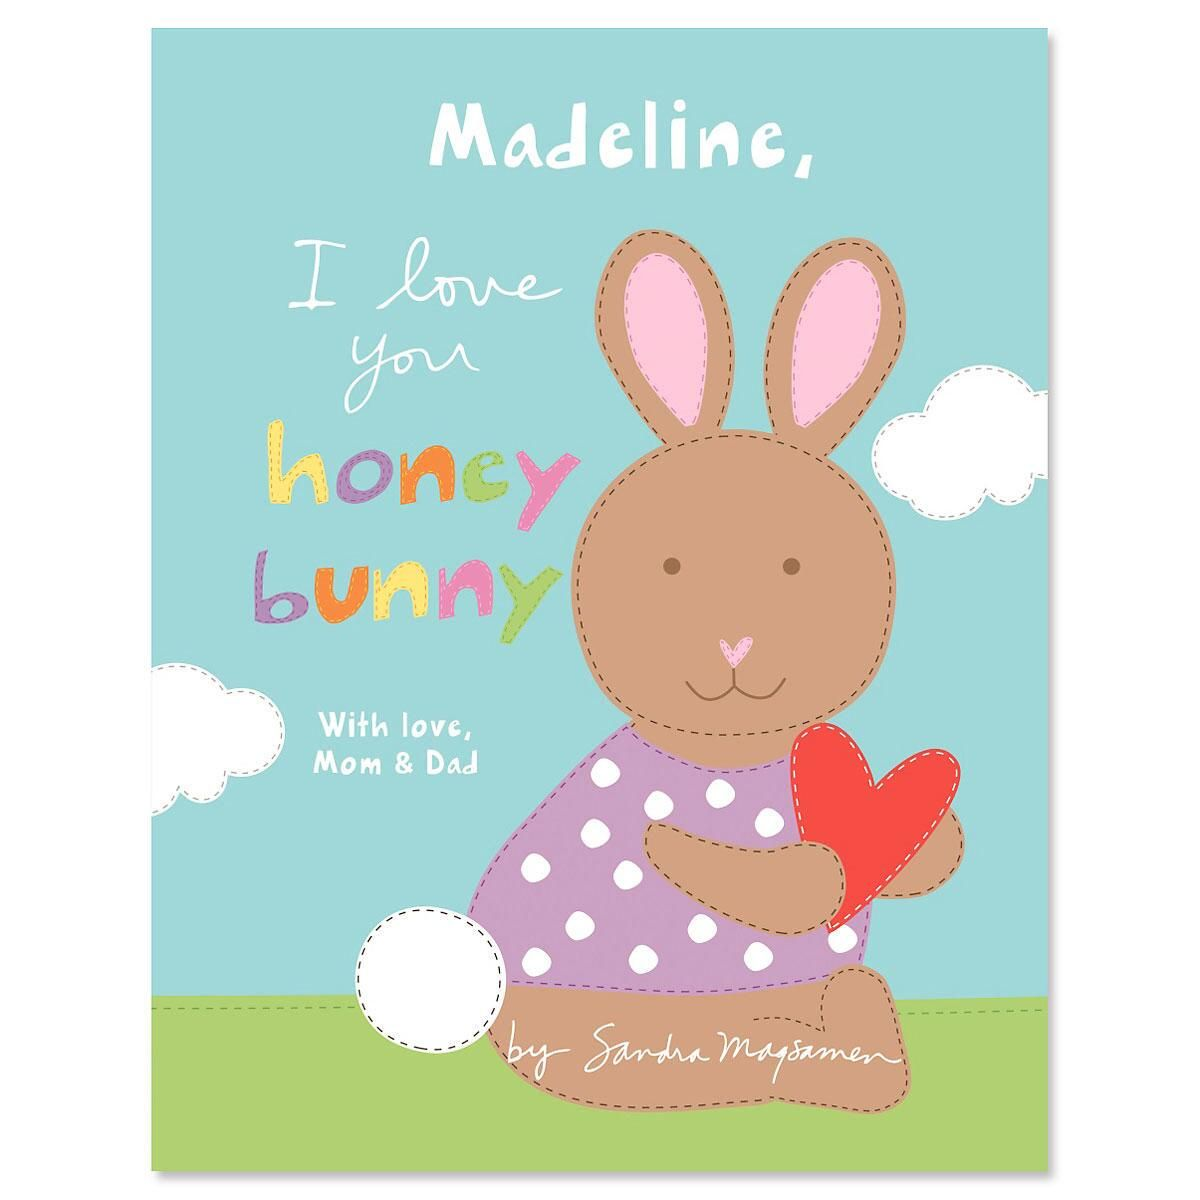 I Love You Honey Bunny Personalized Story Book